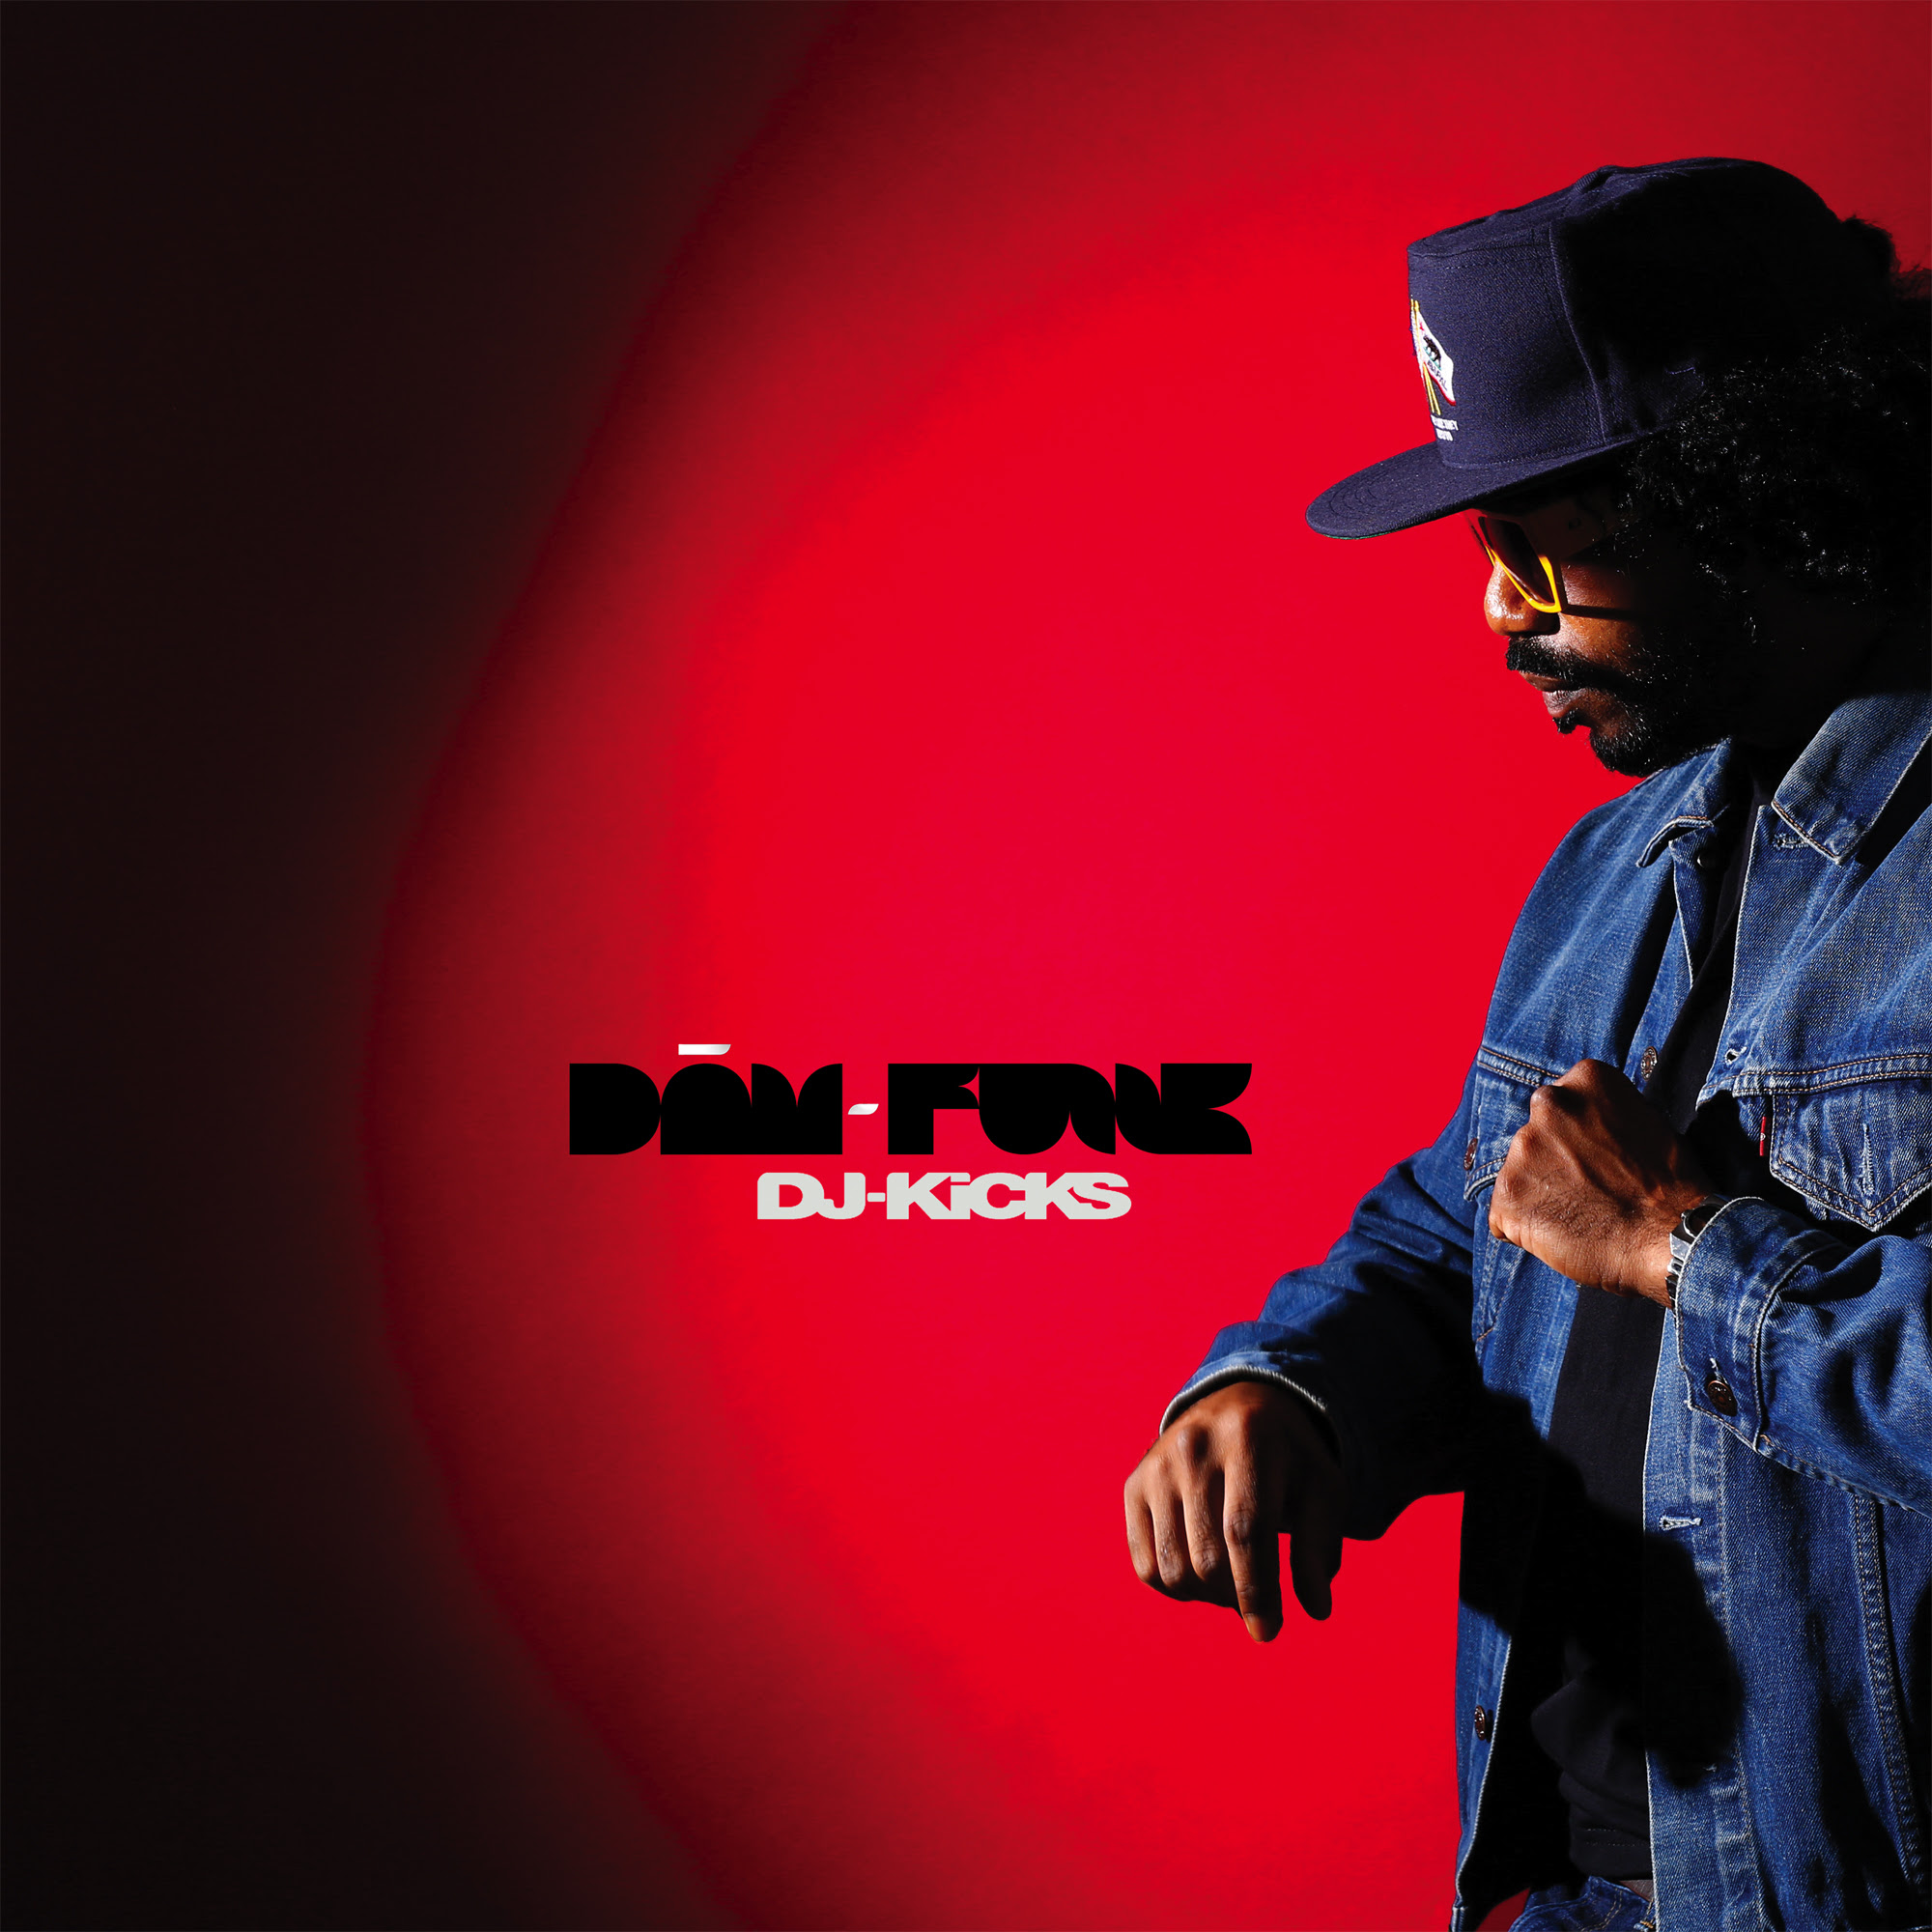 Stream DaM FunK's 'DJ KICKS,' the full-length comes out this week via !k7 Records. DaM FunK kicks off his tour on May 26th in Los Angeles at Amoeba Records.